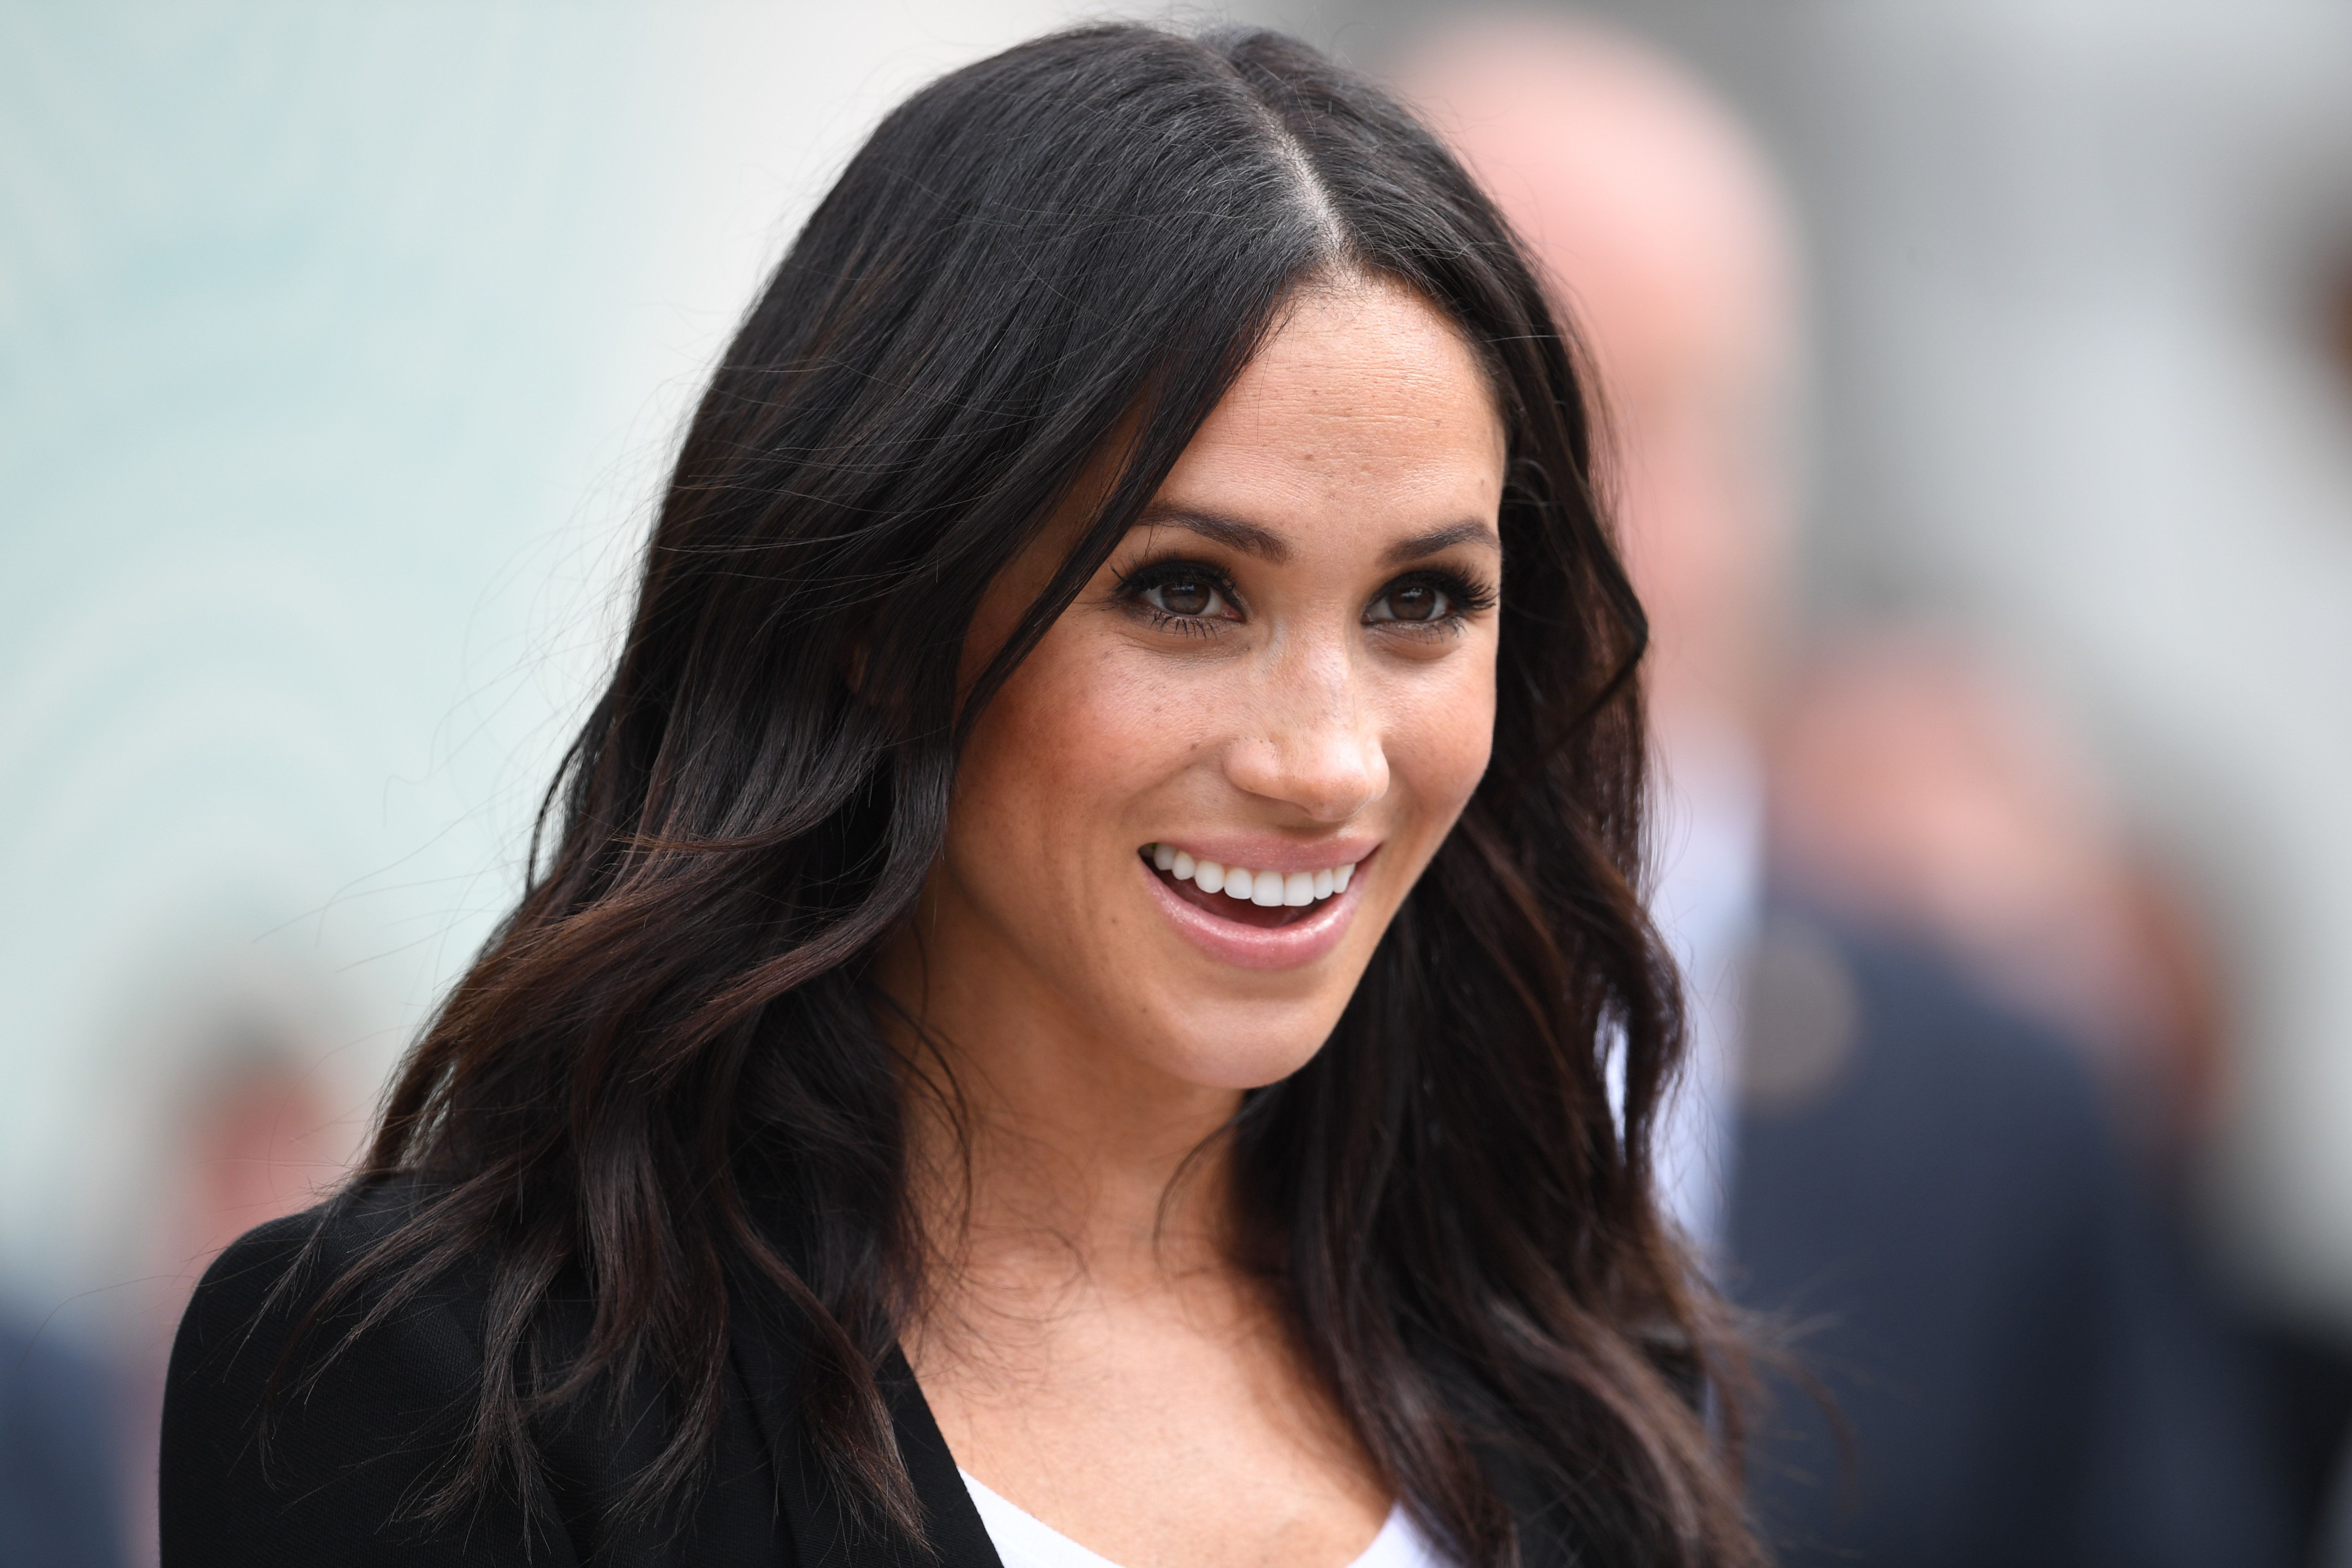 The Duchess of Sussex pictured during her visit to Dublin, Ireland on July